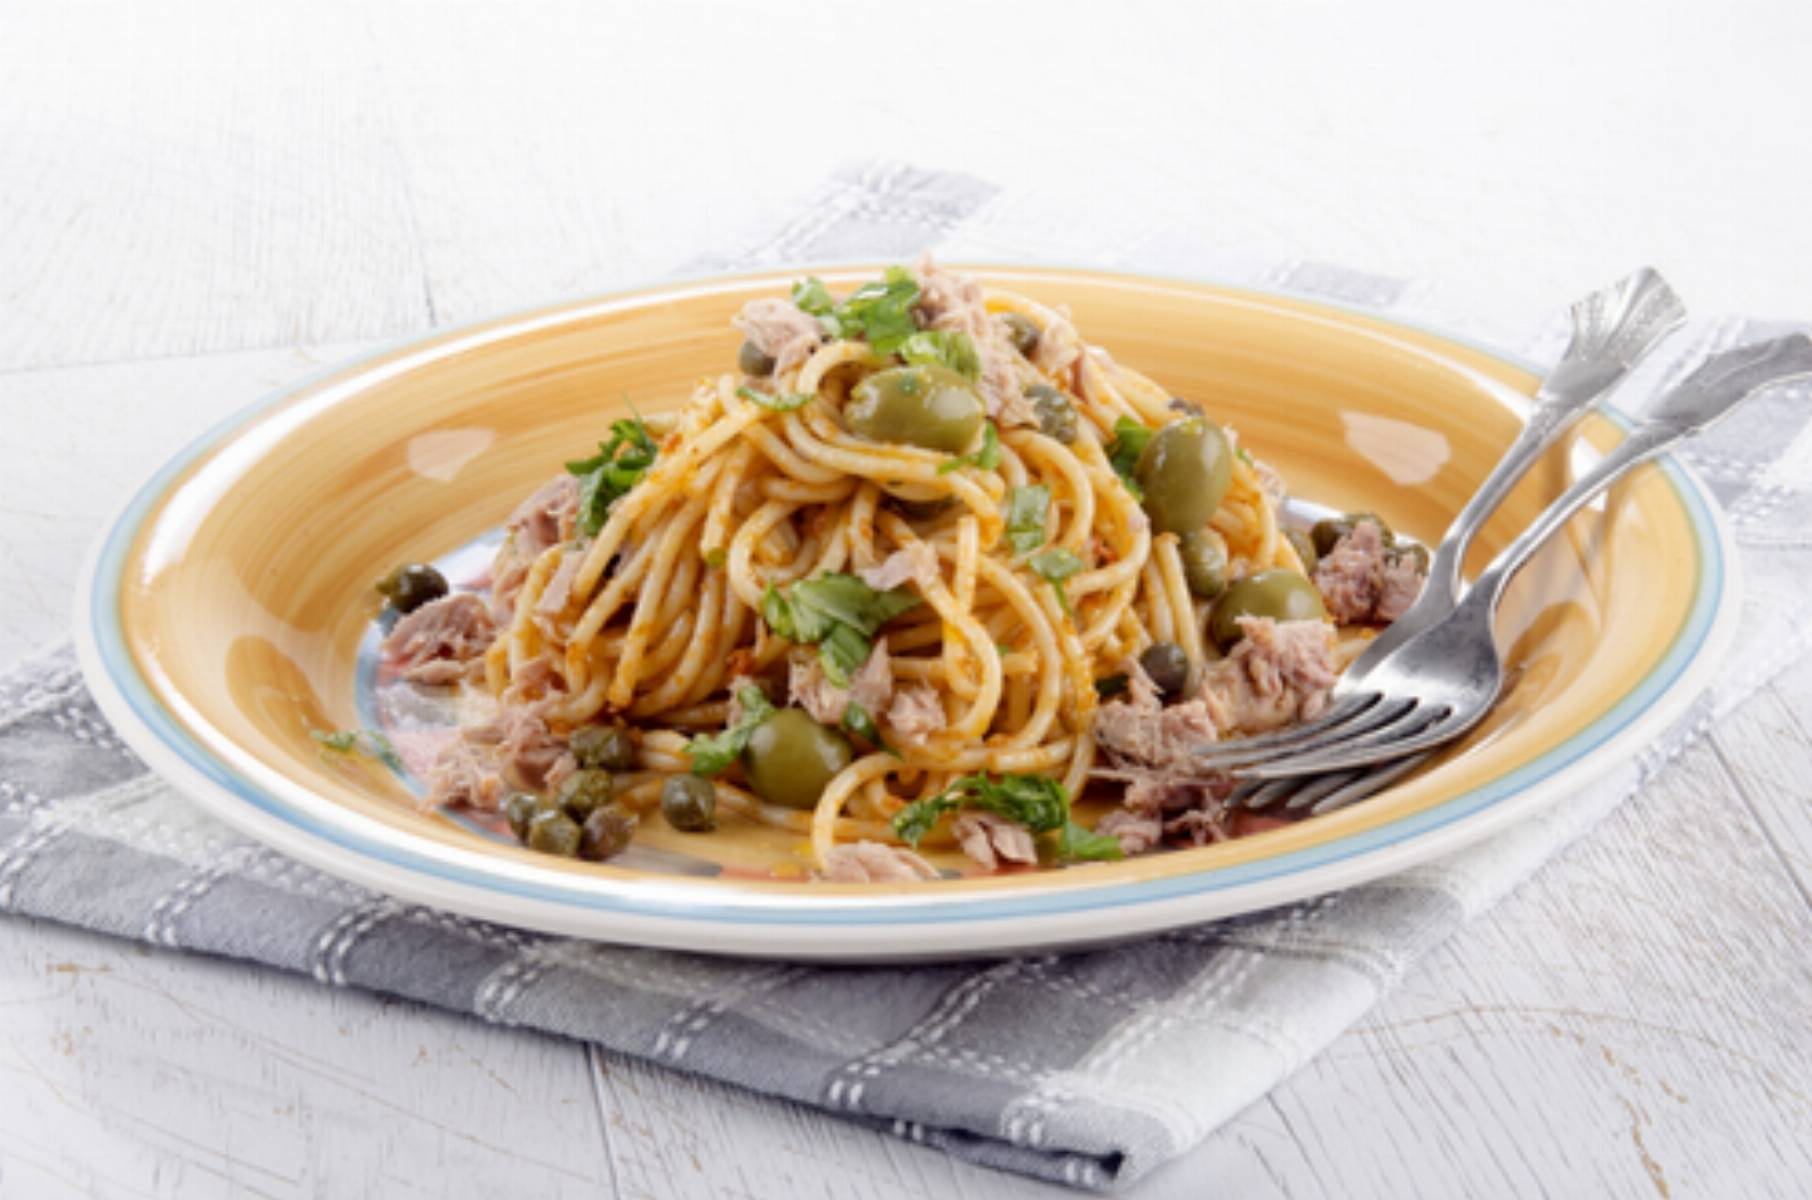 spaghetti with tuna, olive, caper and basil on a plate